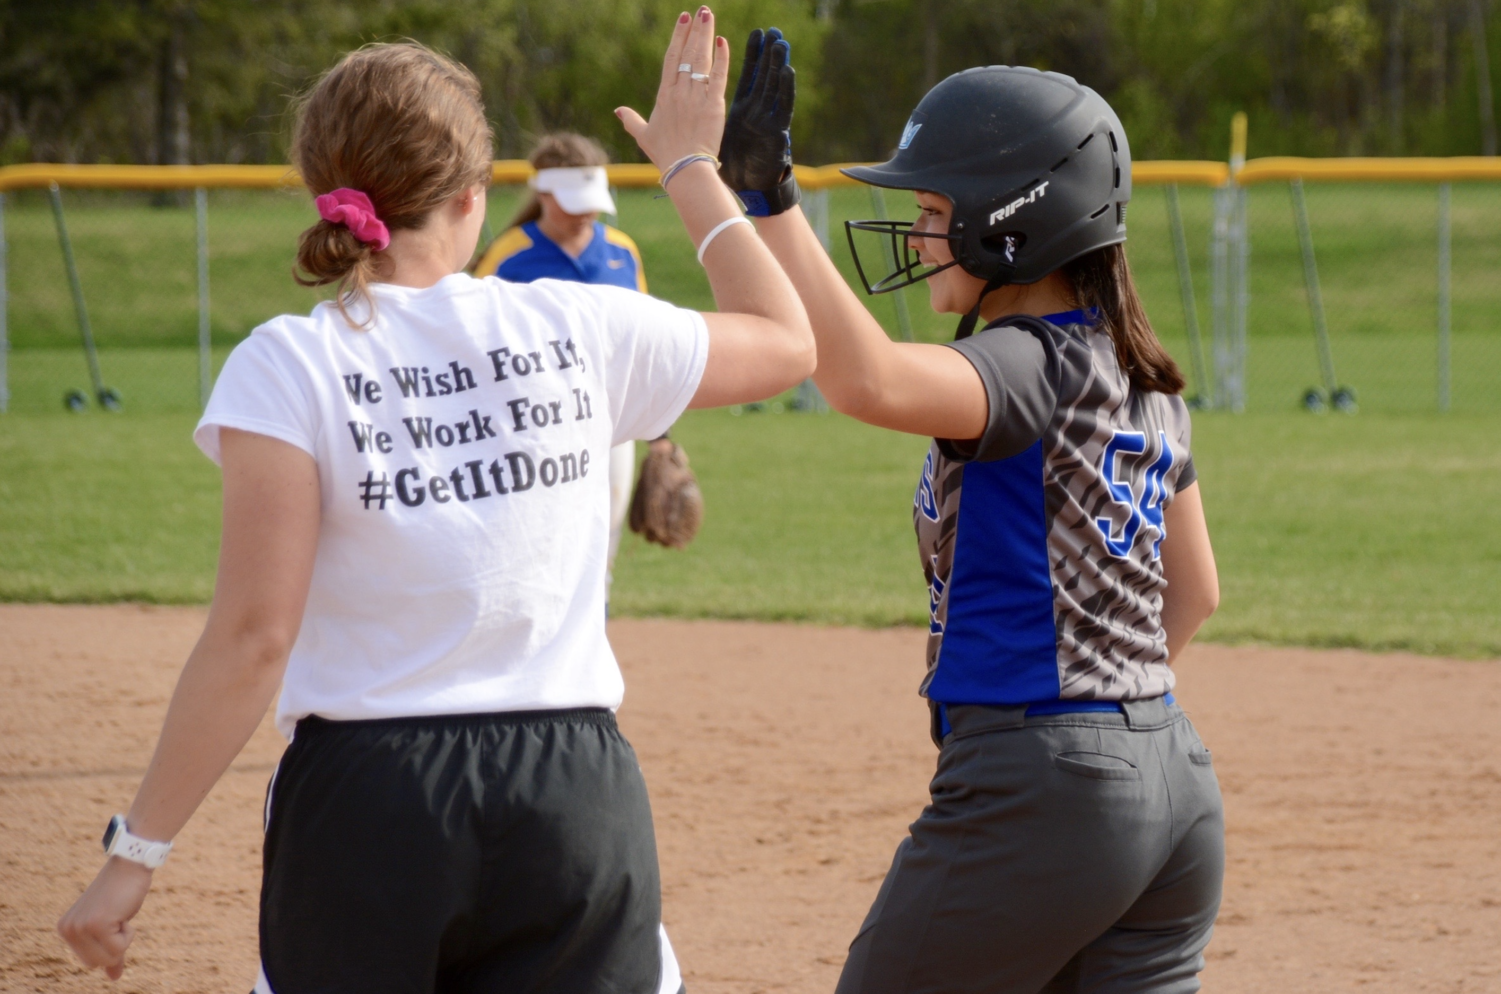 Annika Crouser, junior, talking with coach. Crouser plays second base.